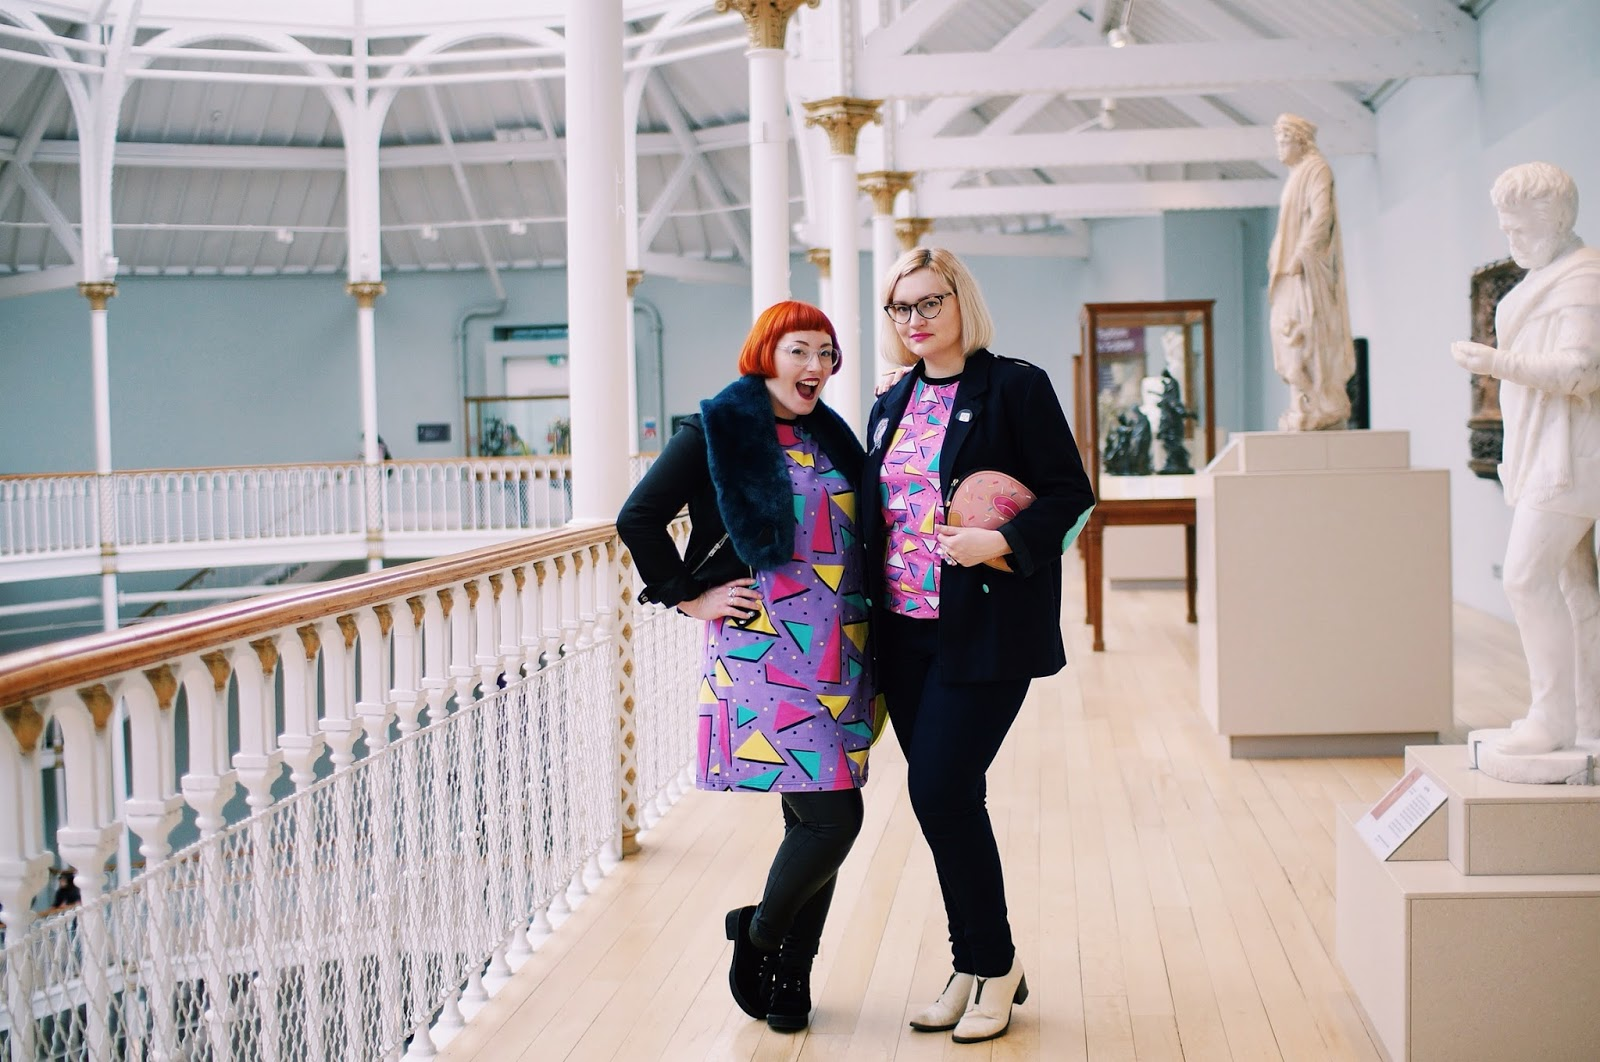 Helen and Kimberley, Wardrobe Conversations, Boya Shen, moveit video project, YouTube, National Museum of Scotland, photoshoot location, Scottish bloggers,